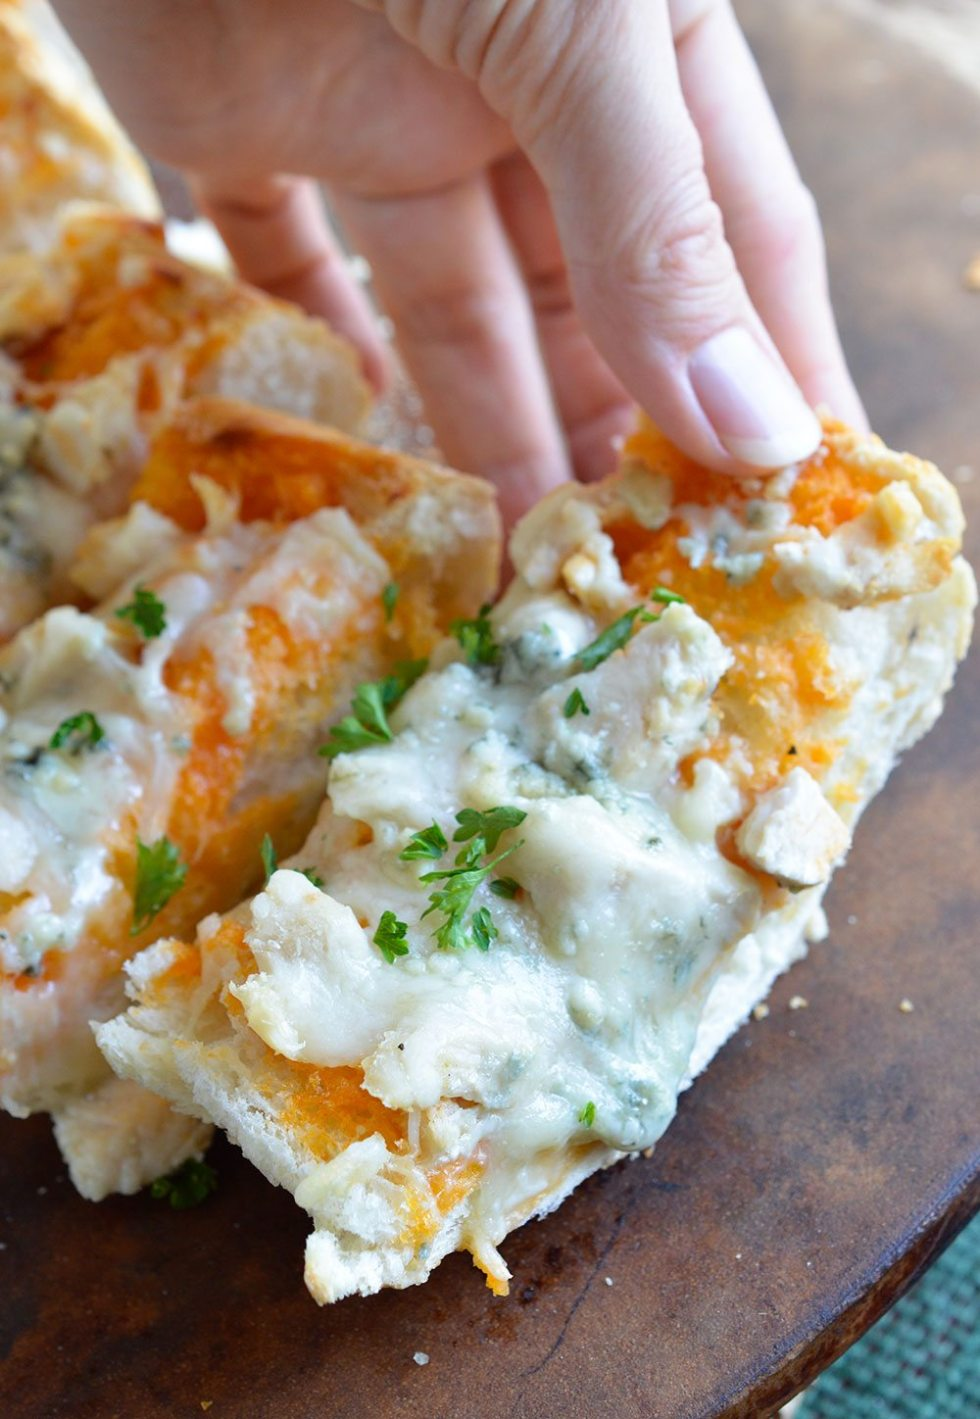 Buffalo Chicken Cheesy Bread is an easy and flavorful game day appetizer! Buffalo wing sauce, chicken and blue cheese come together in this hot, melty recipe.